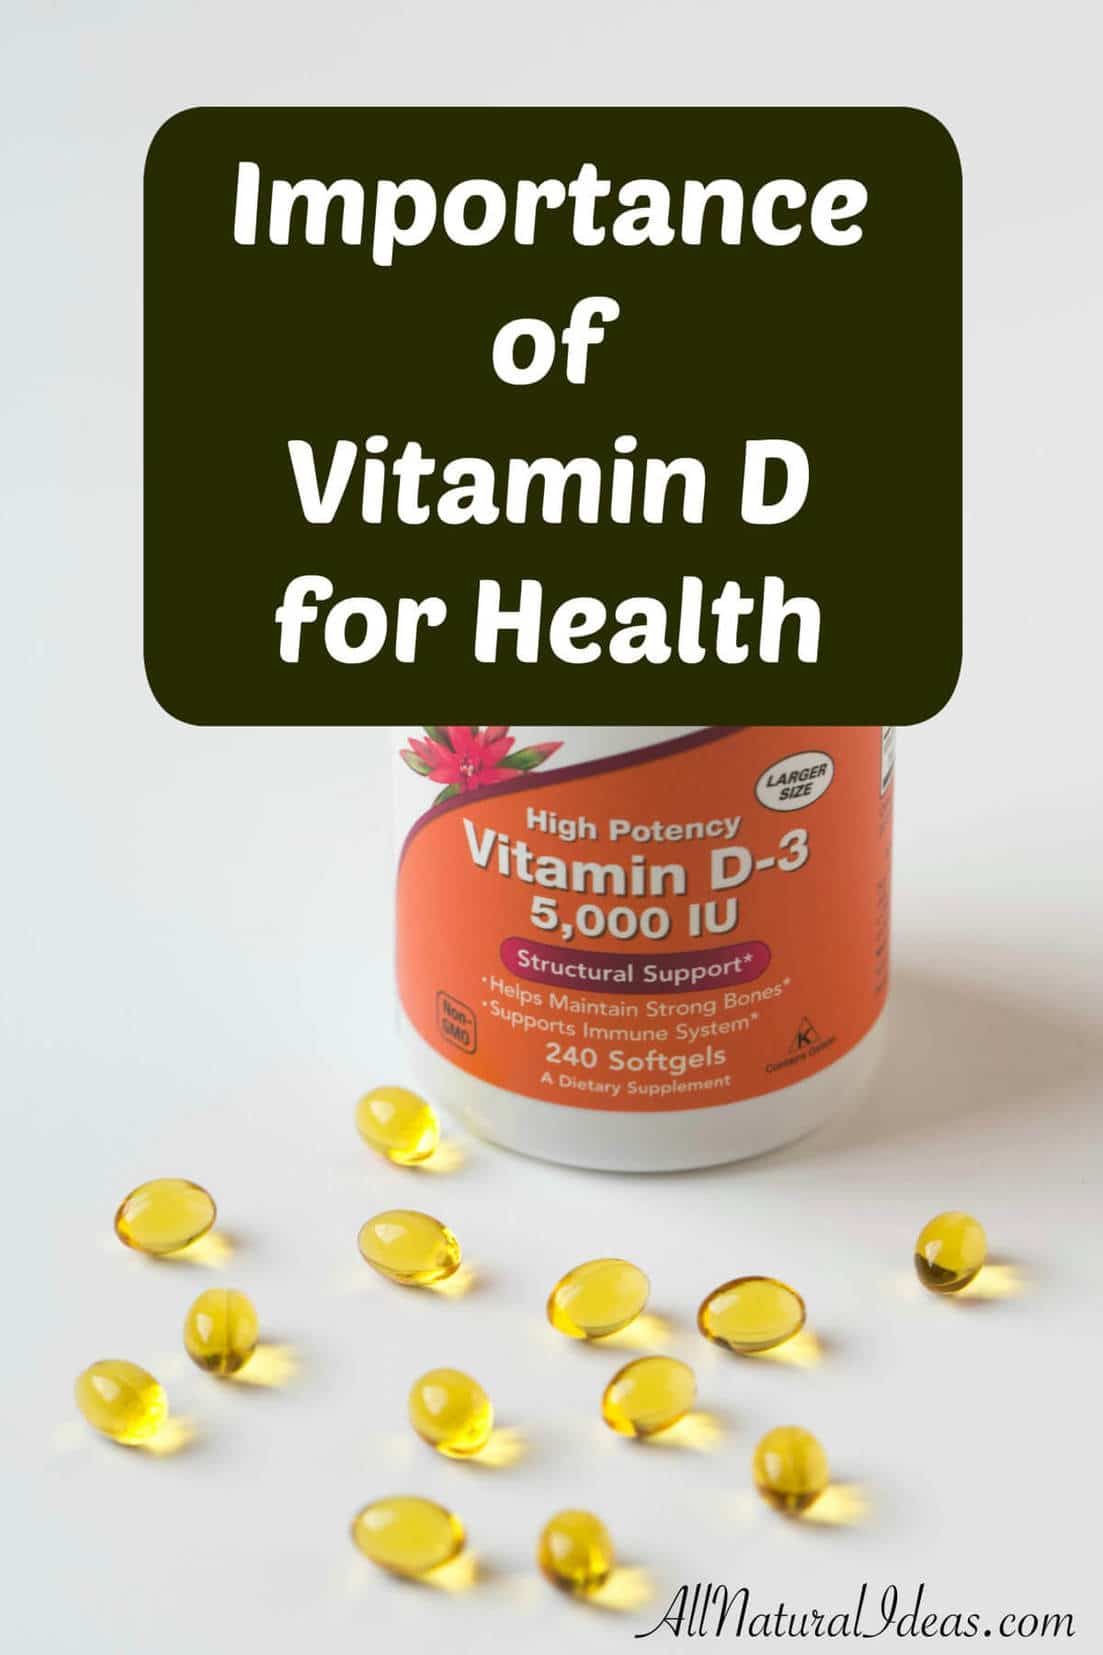 What are the vitamin D important functions for health? Vitamin D is needed for healthy bones and to help you fight off infections by boosting immune system.